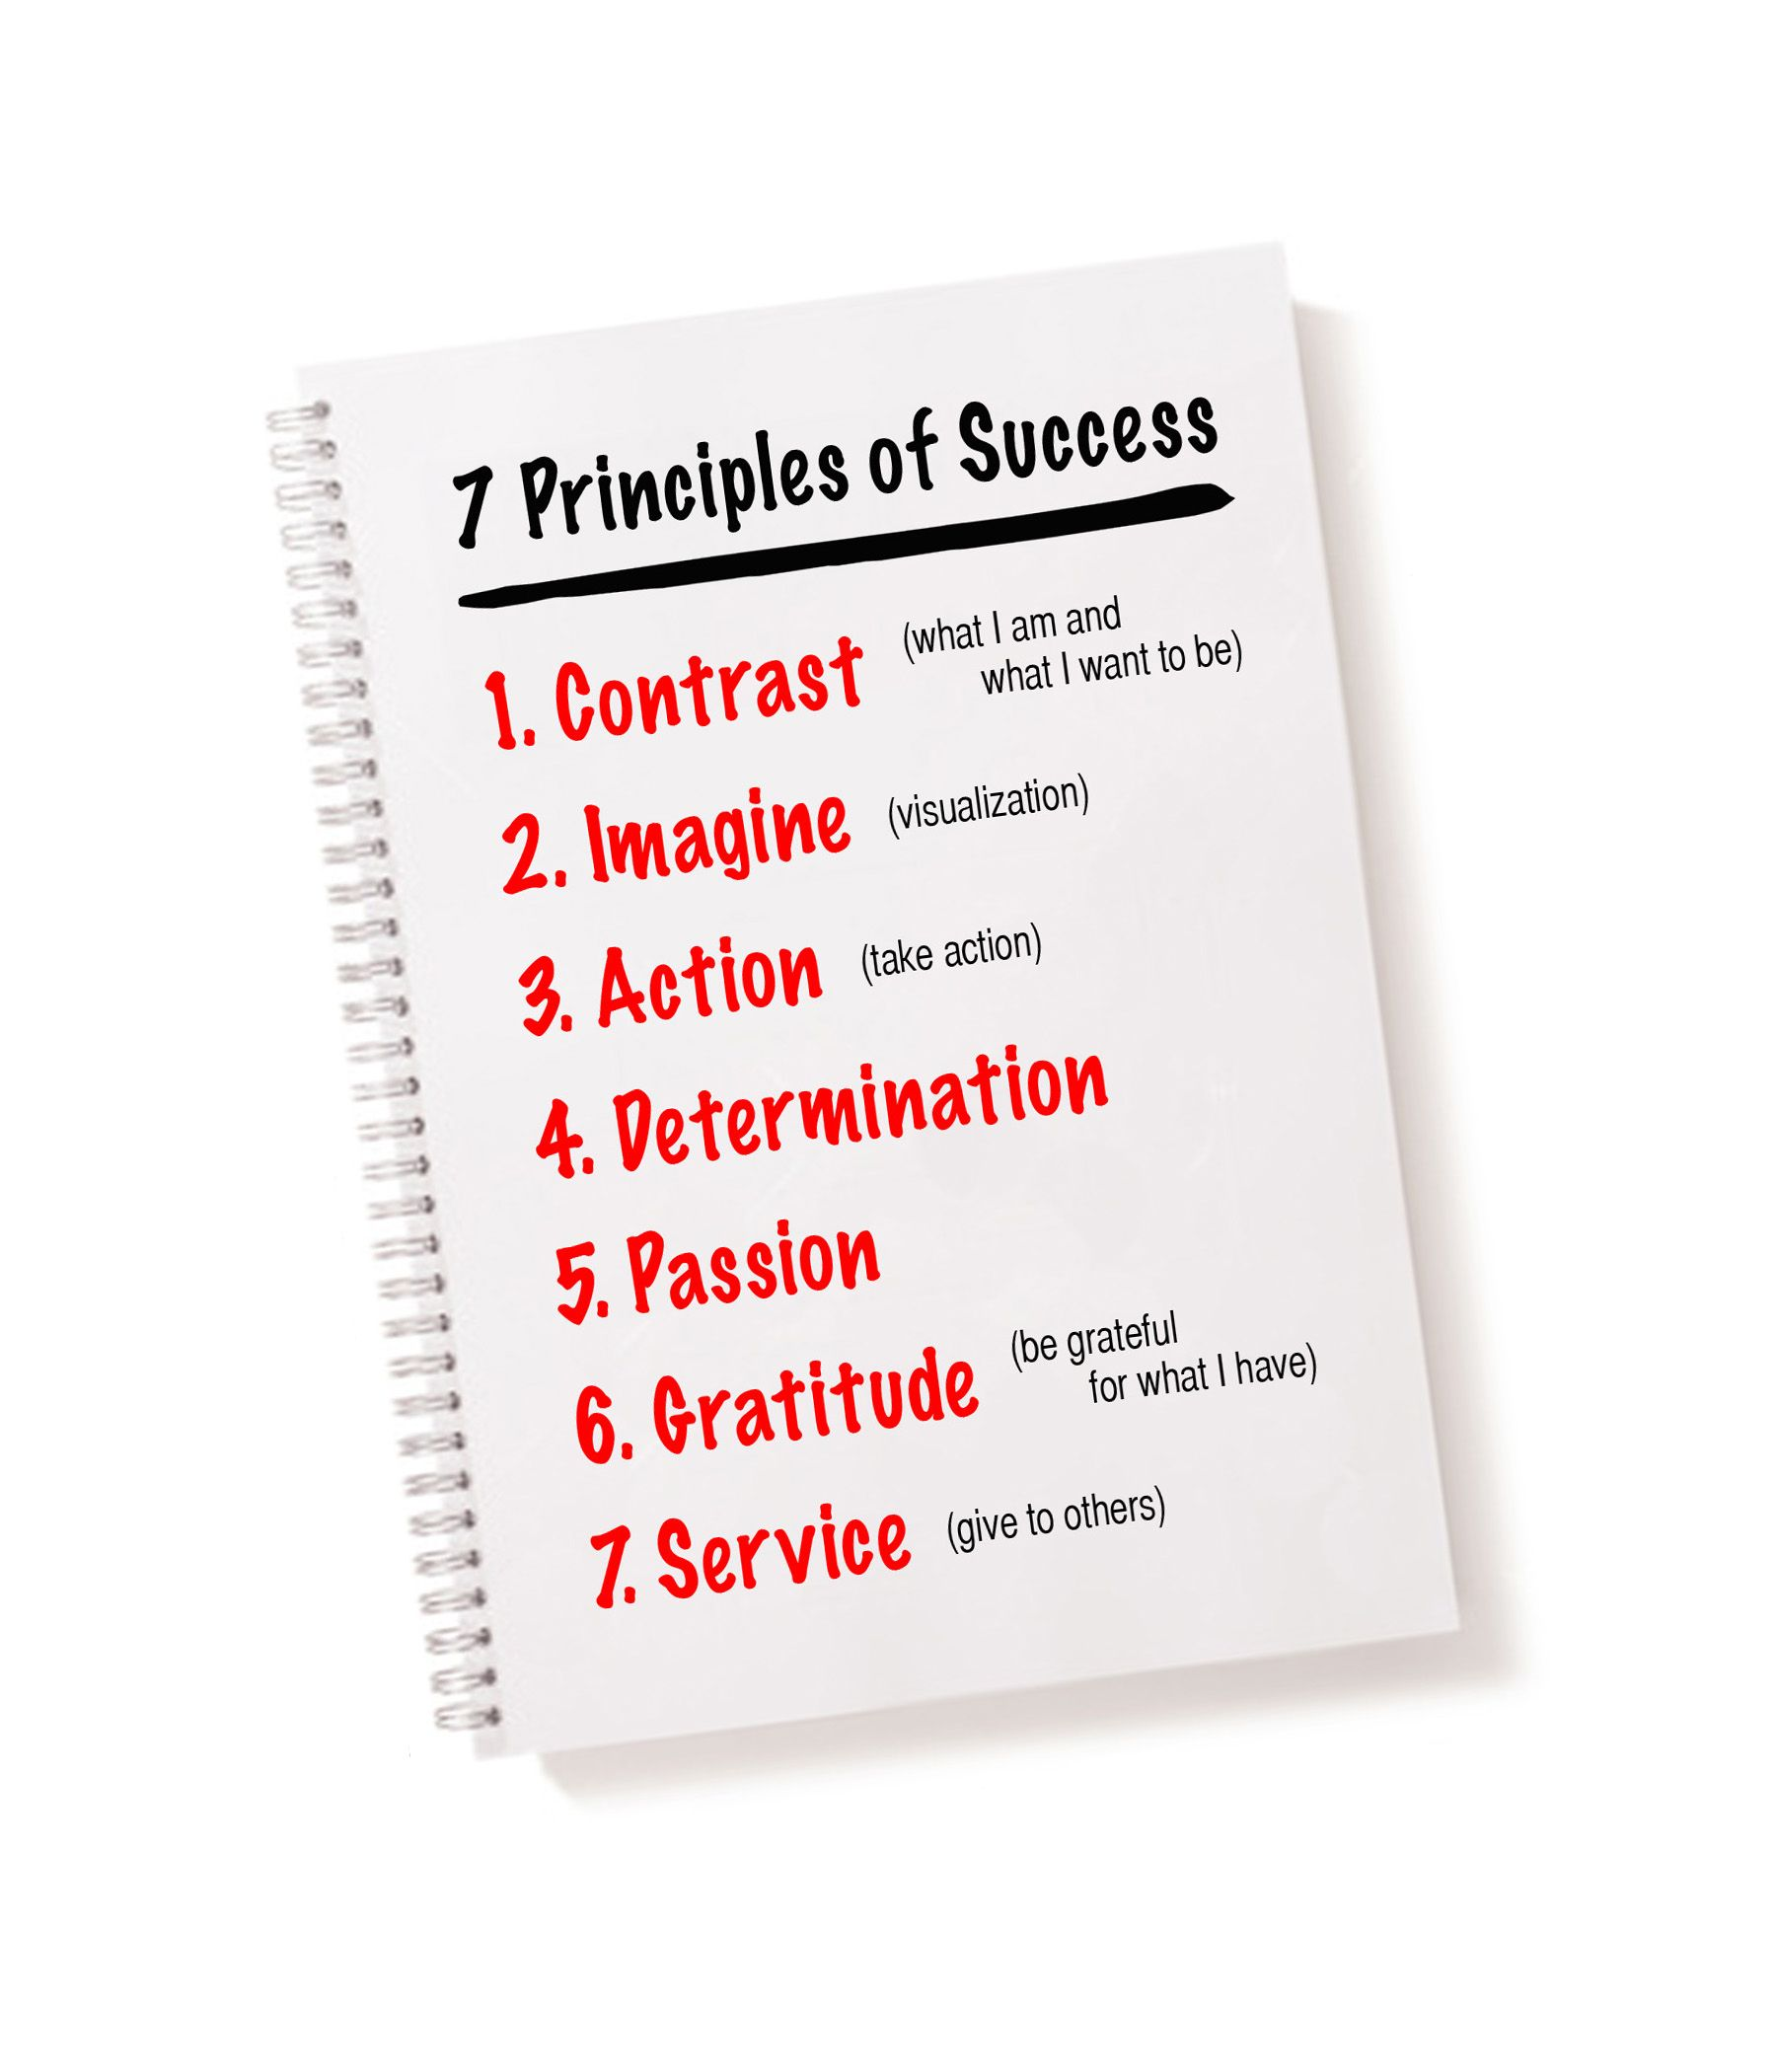 7 Principles of Success